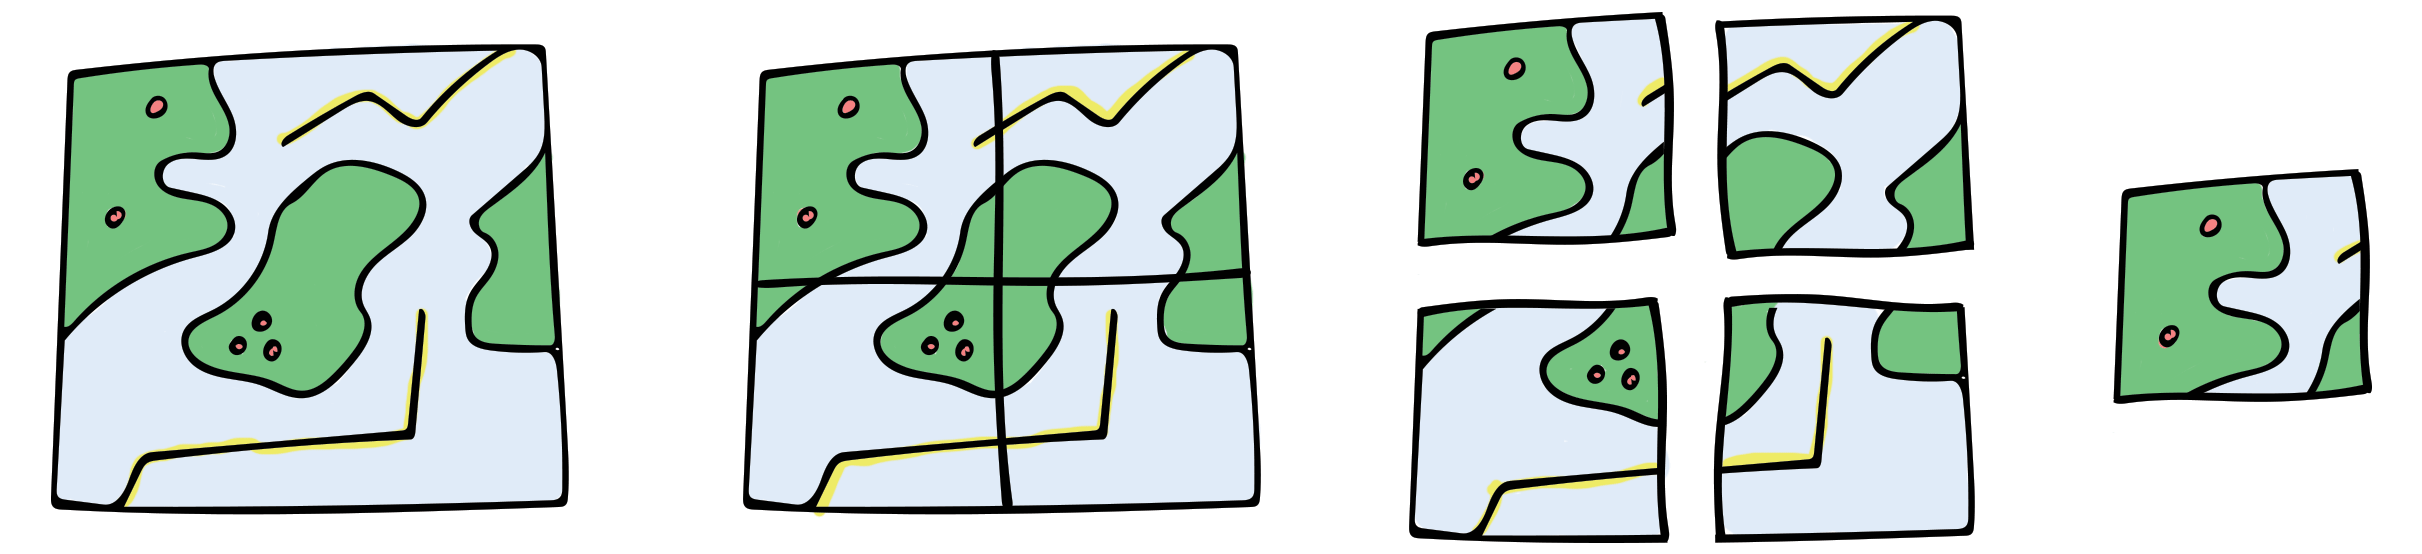 Seattle Maptime Vector Tiles to Web Map - April 3, 2019